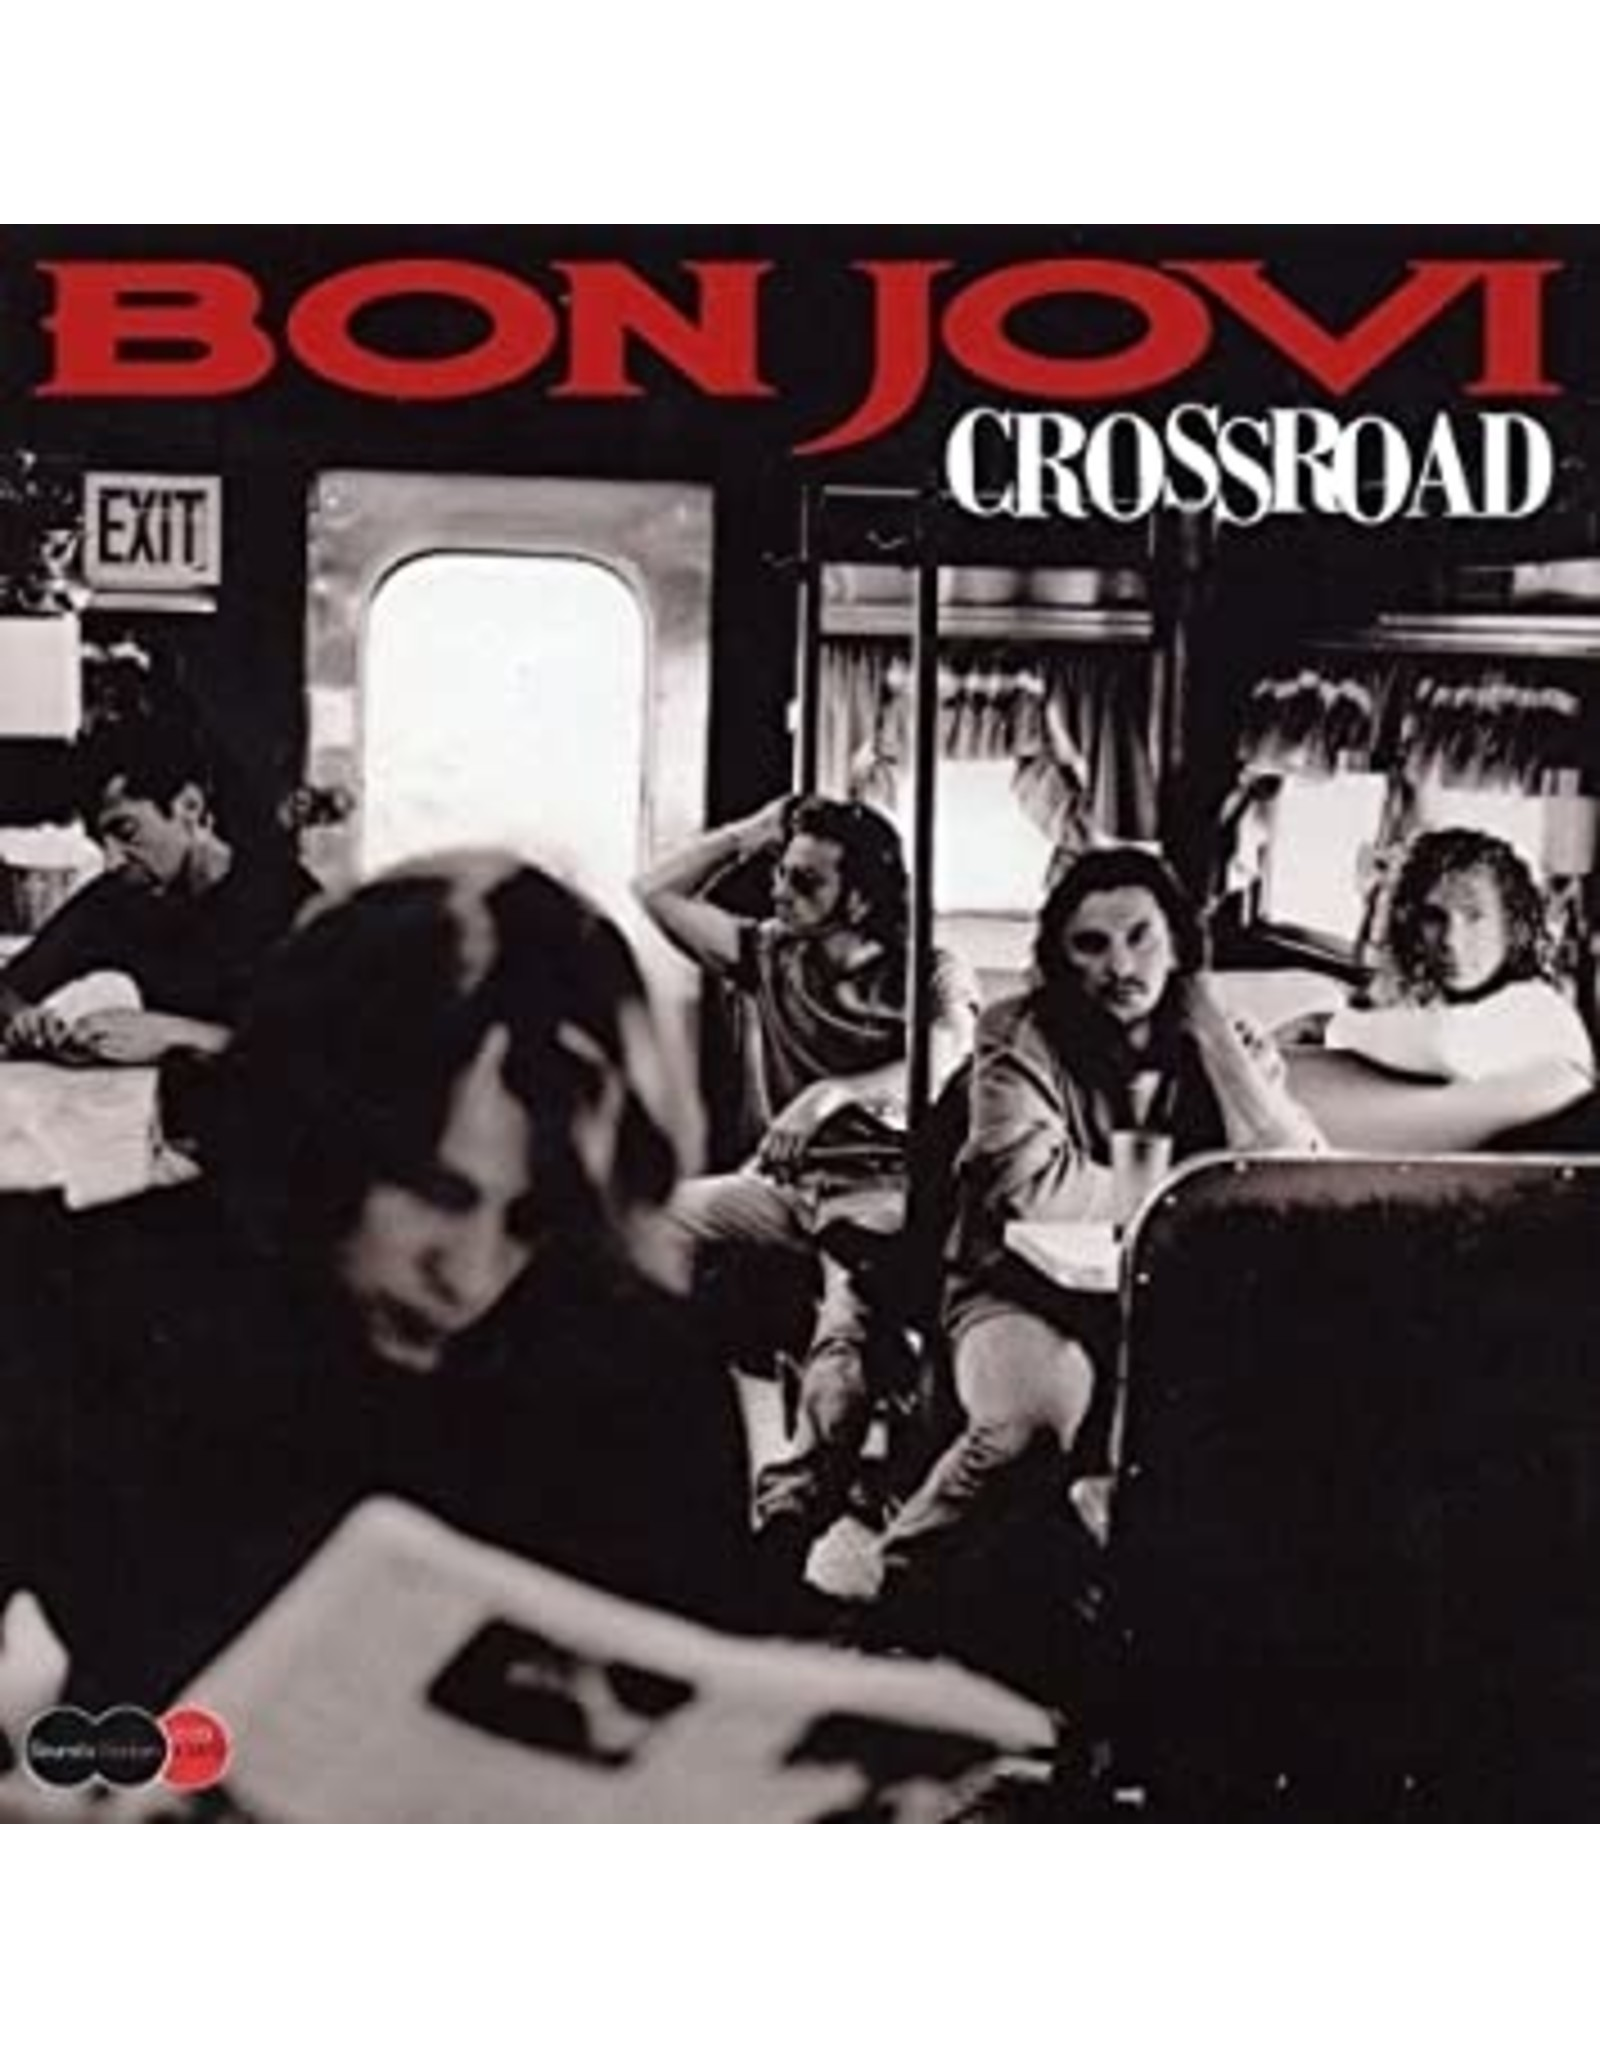 New Vinyl Bon Jovi - Cross Road: The Best Of Bon Jovi 2LP